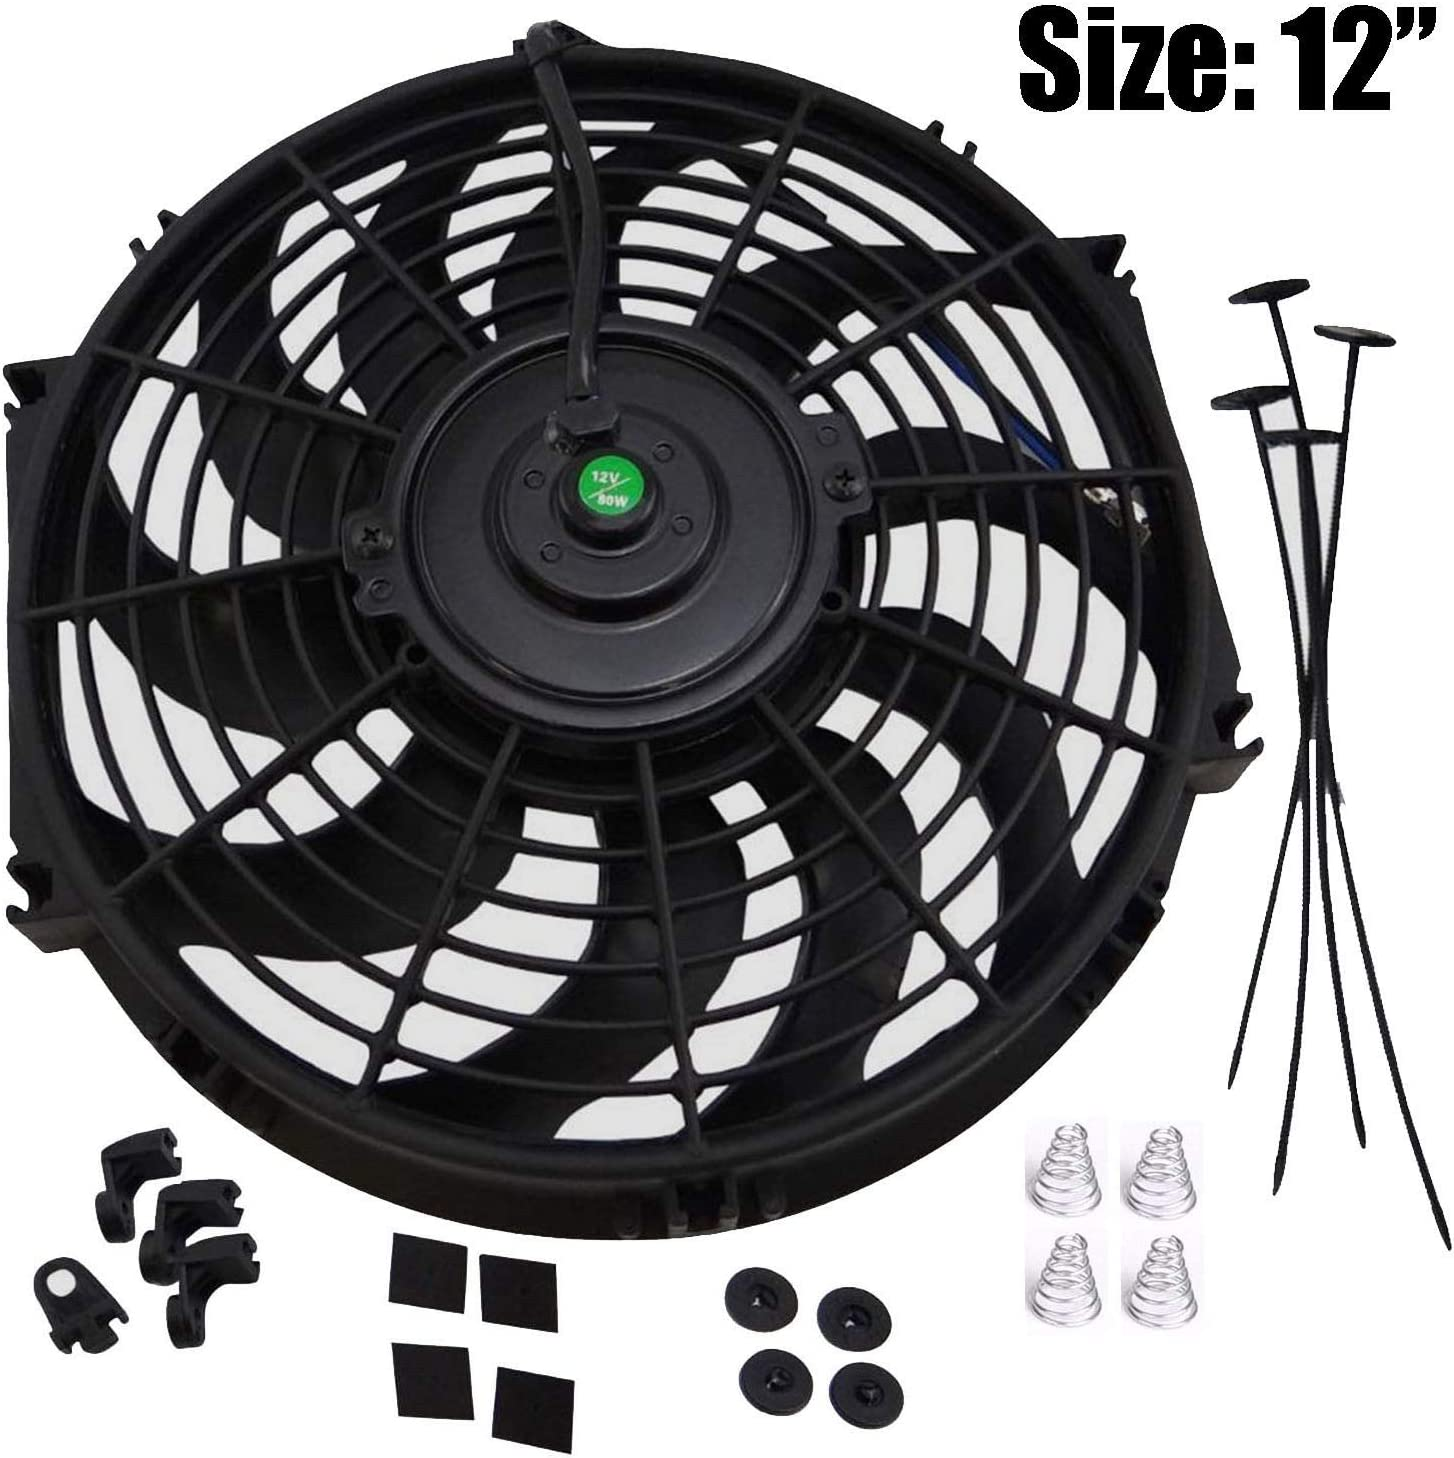 "LTI Universal High Performance S Blade Pull/Push 12V Slim Electric Cooling Radiator Fan + Fan Mounting Kit (12"", Black)"